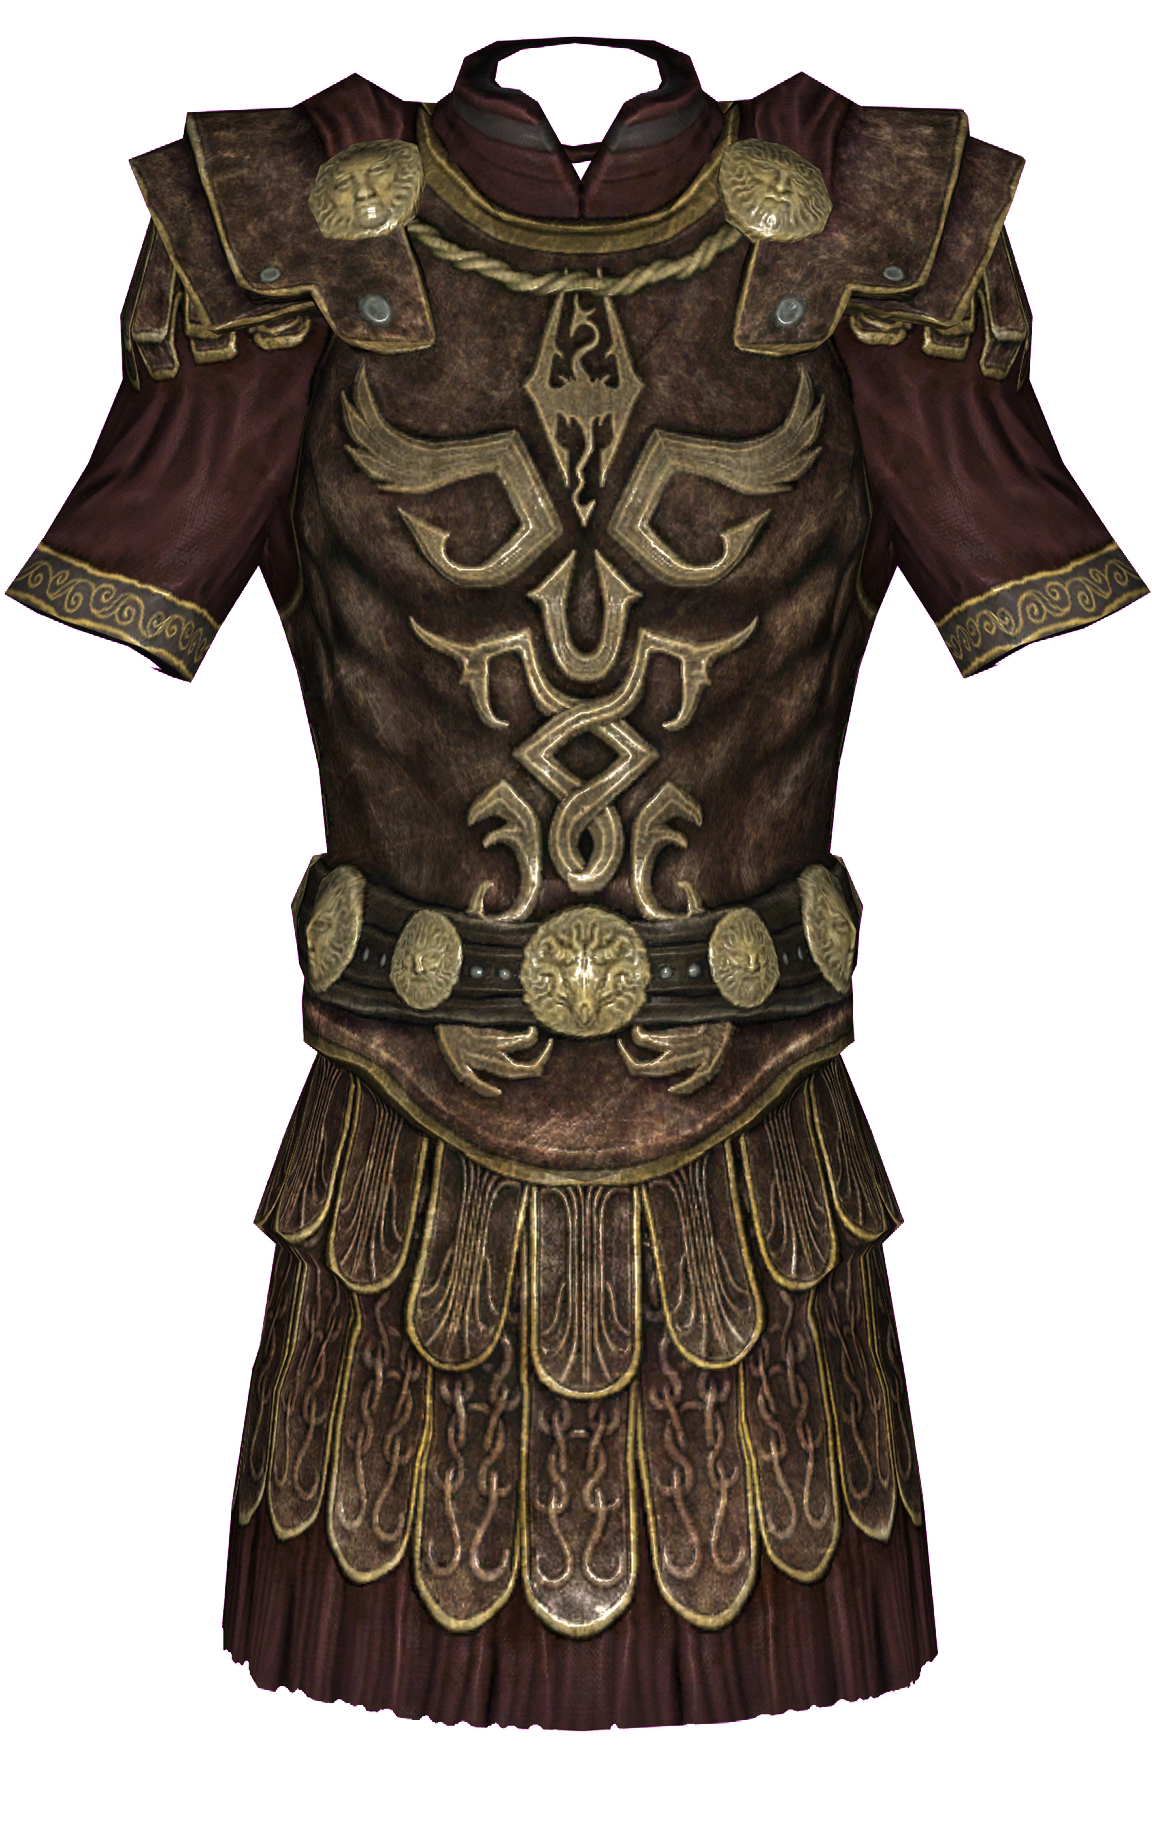 General Tullius' Armor | Elder Scrolls | FANDOM powered by Wikia